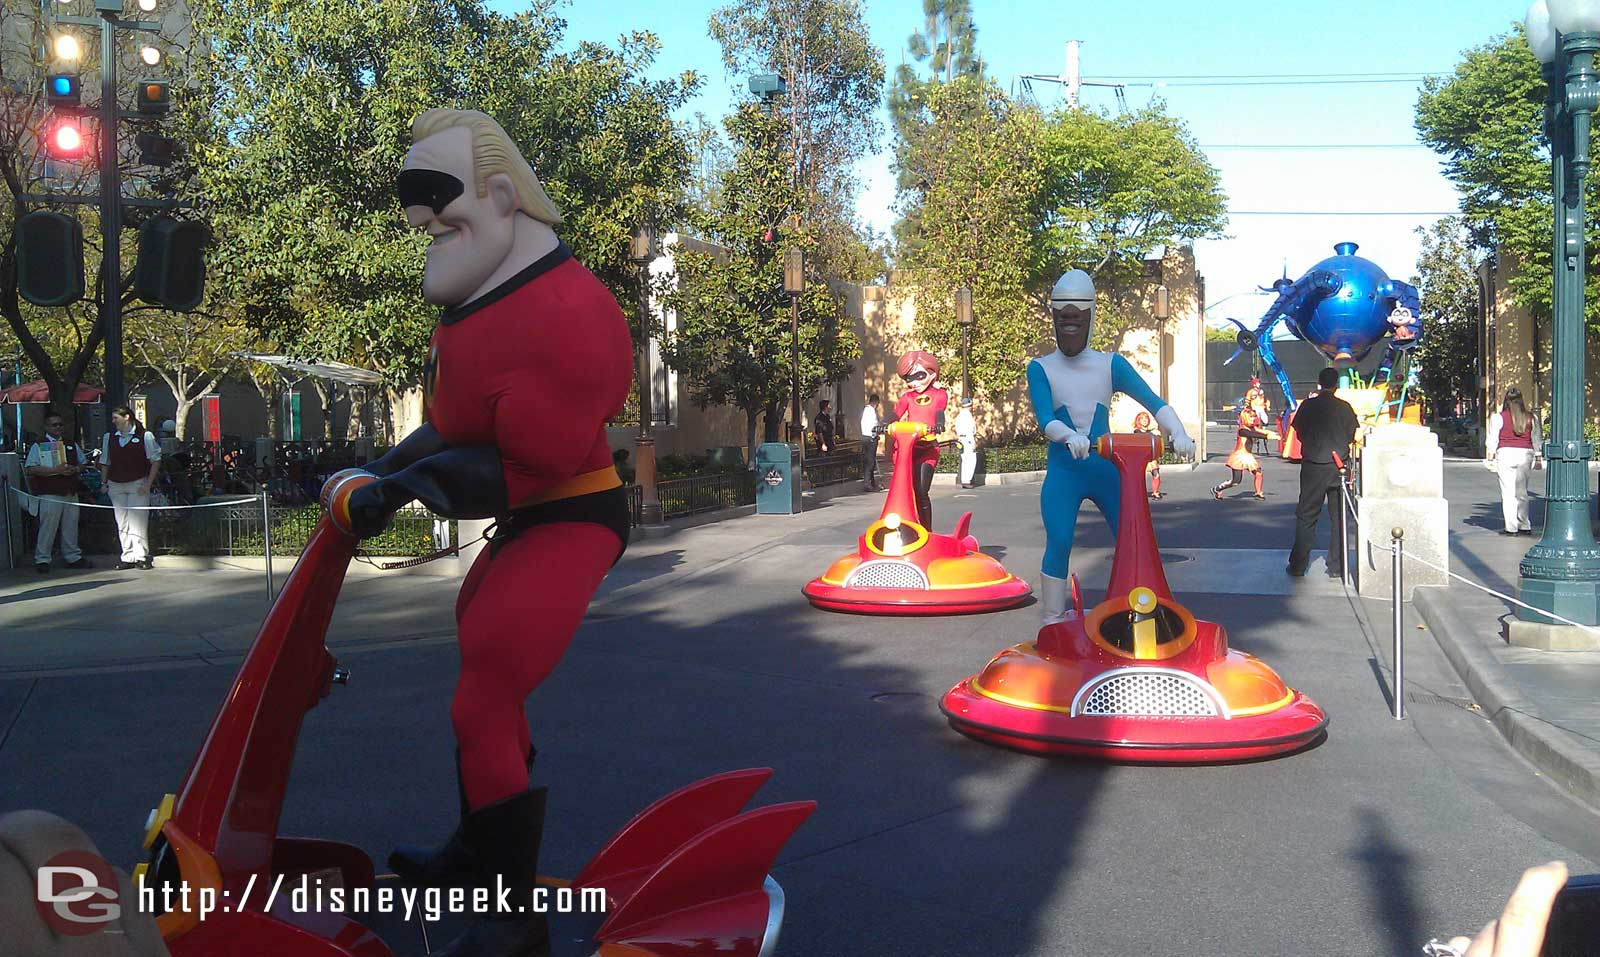 The Incredibles lead off the Pixar Play Parade now.